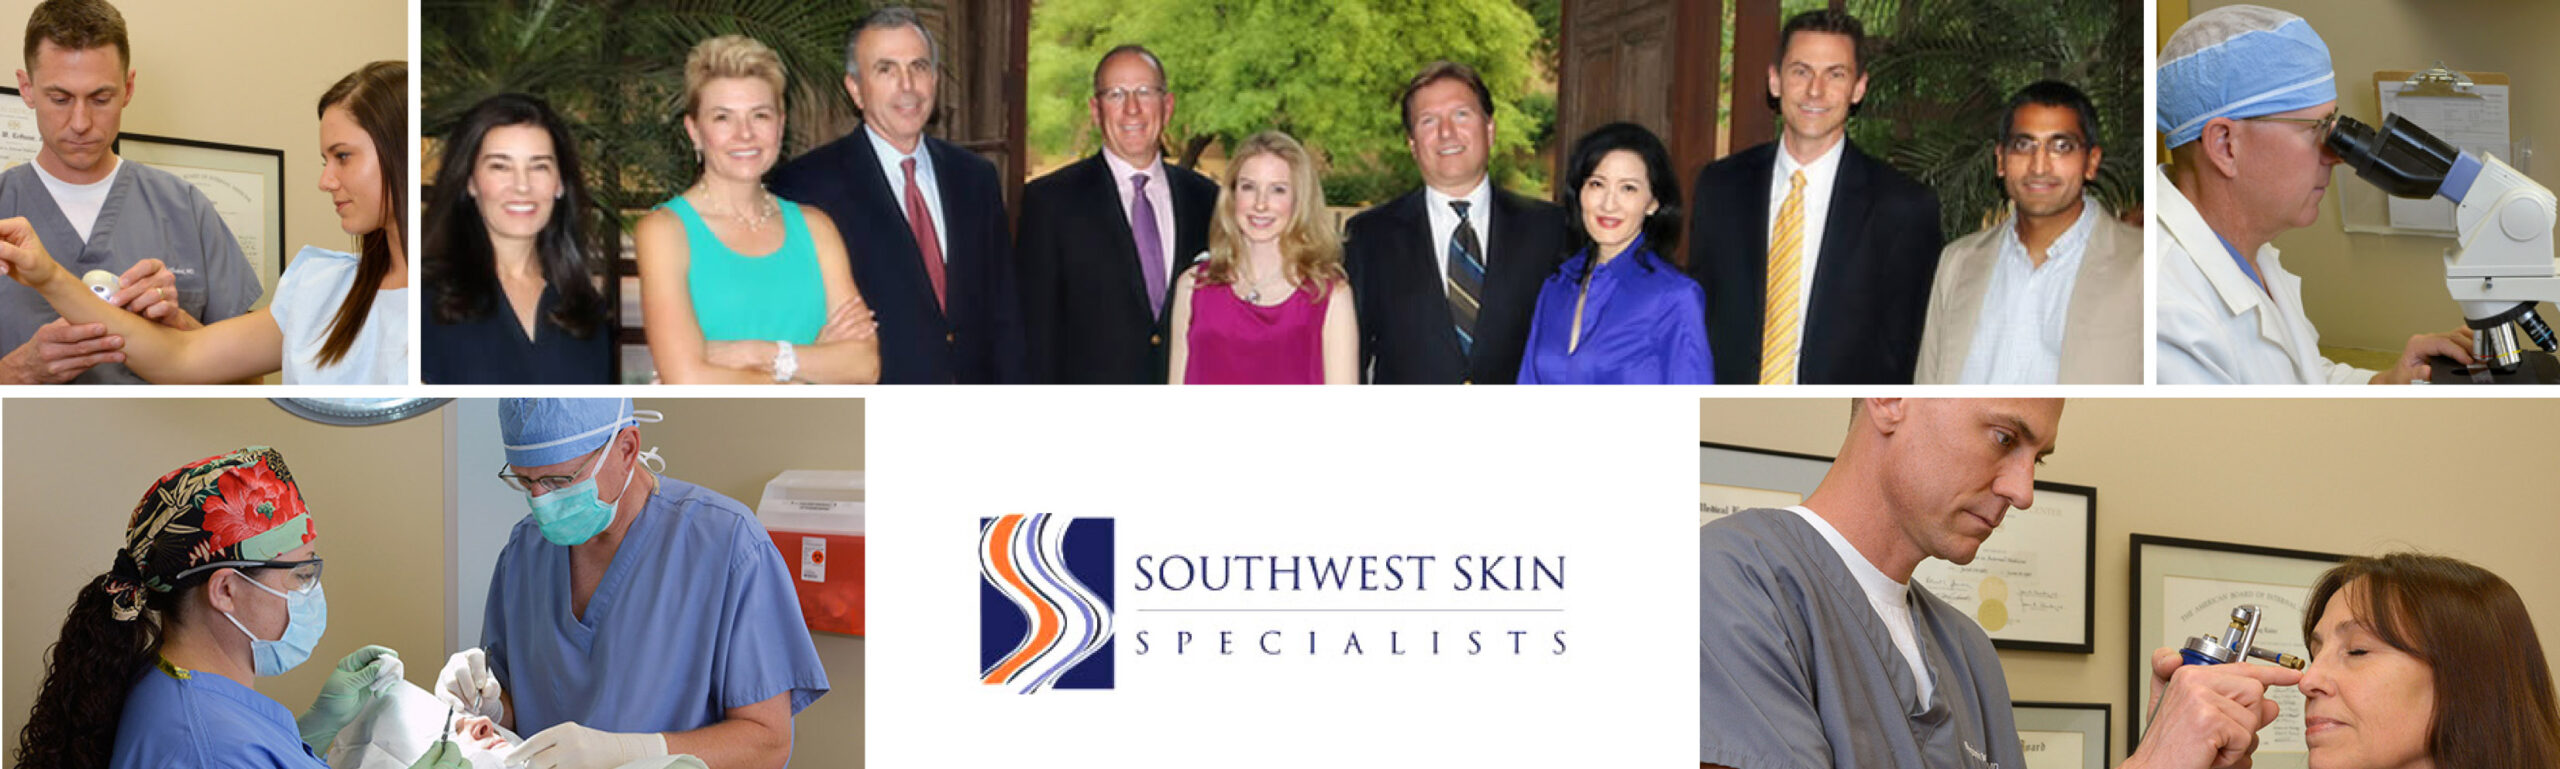 Southwest Skin Specialists is one of the best!